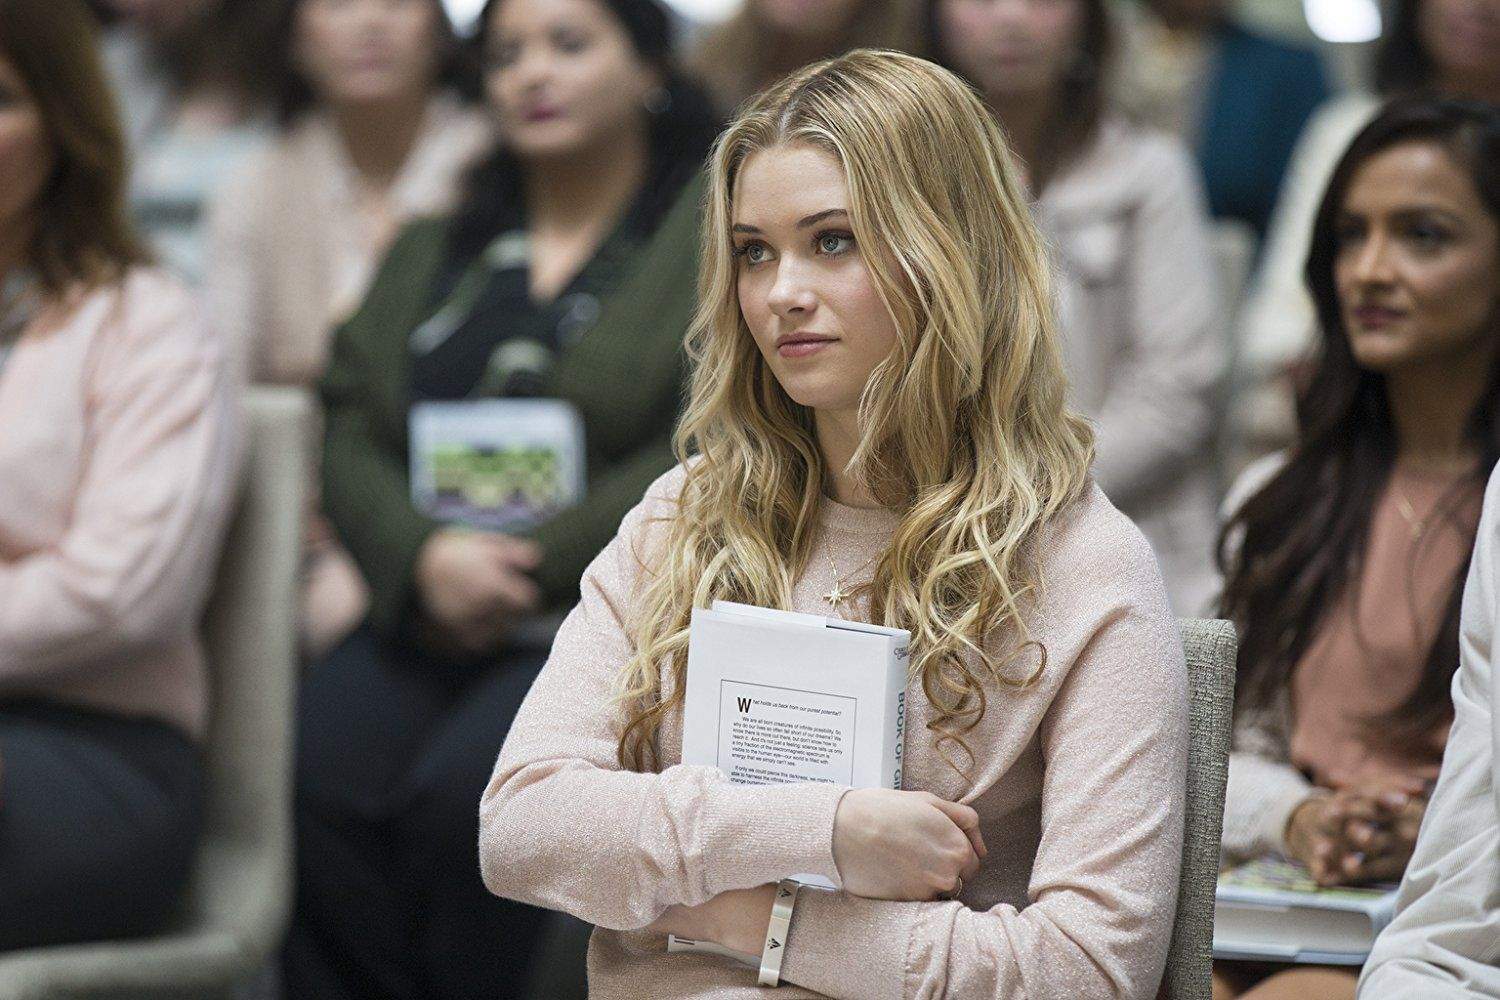 Virginia Gardner as Karolina Dean in Marvel's Runaways